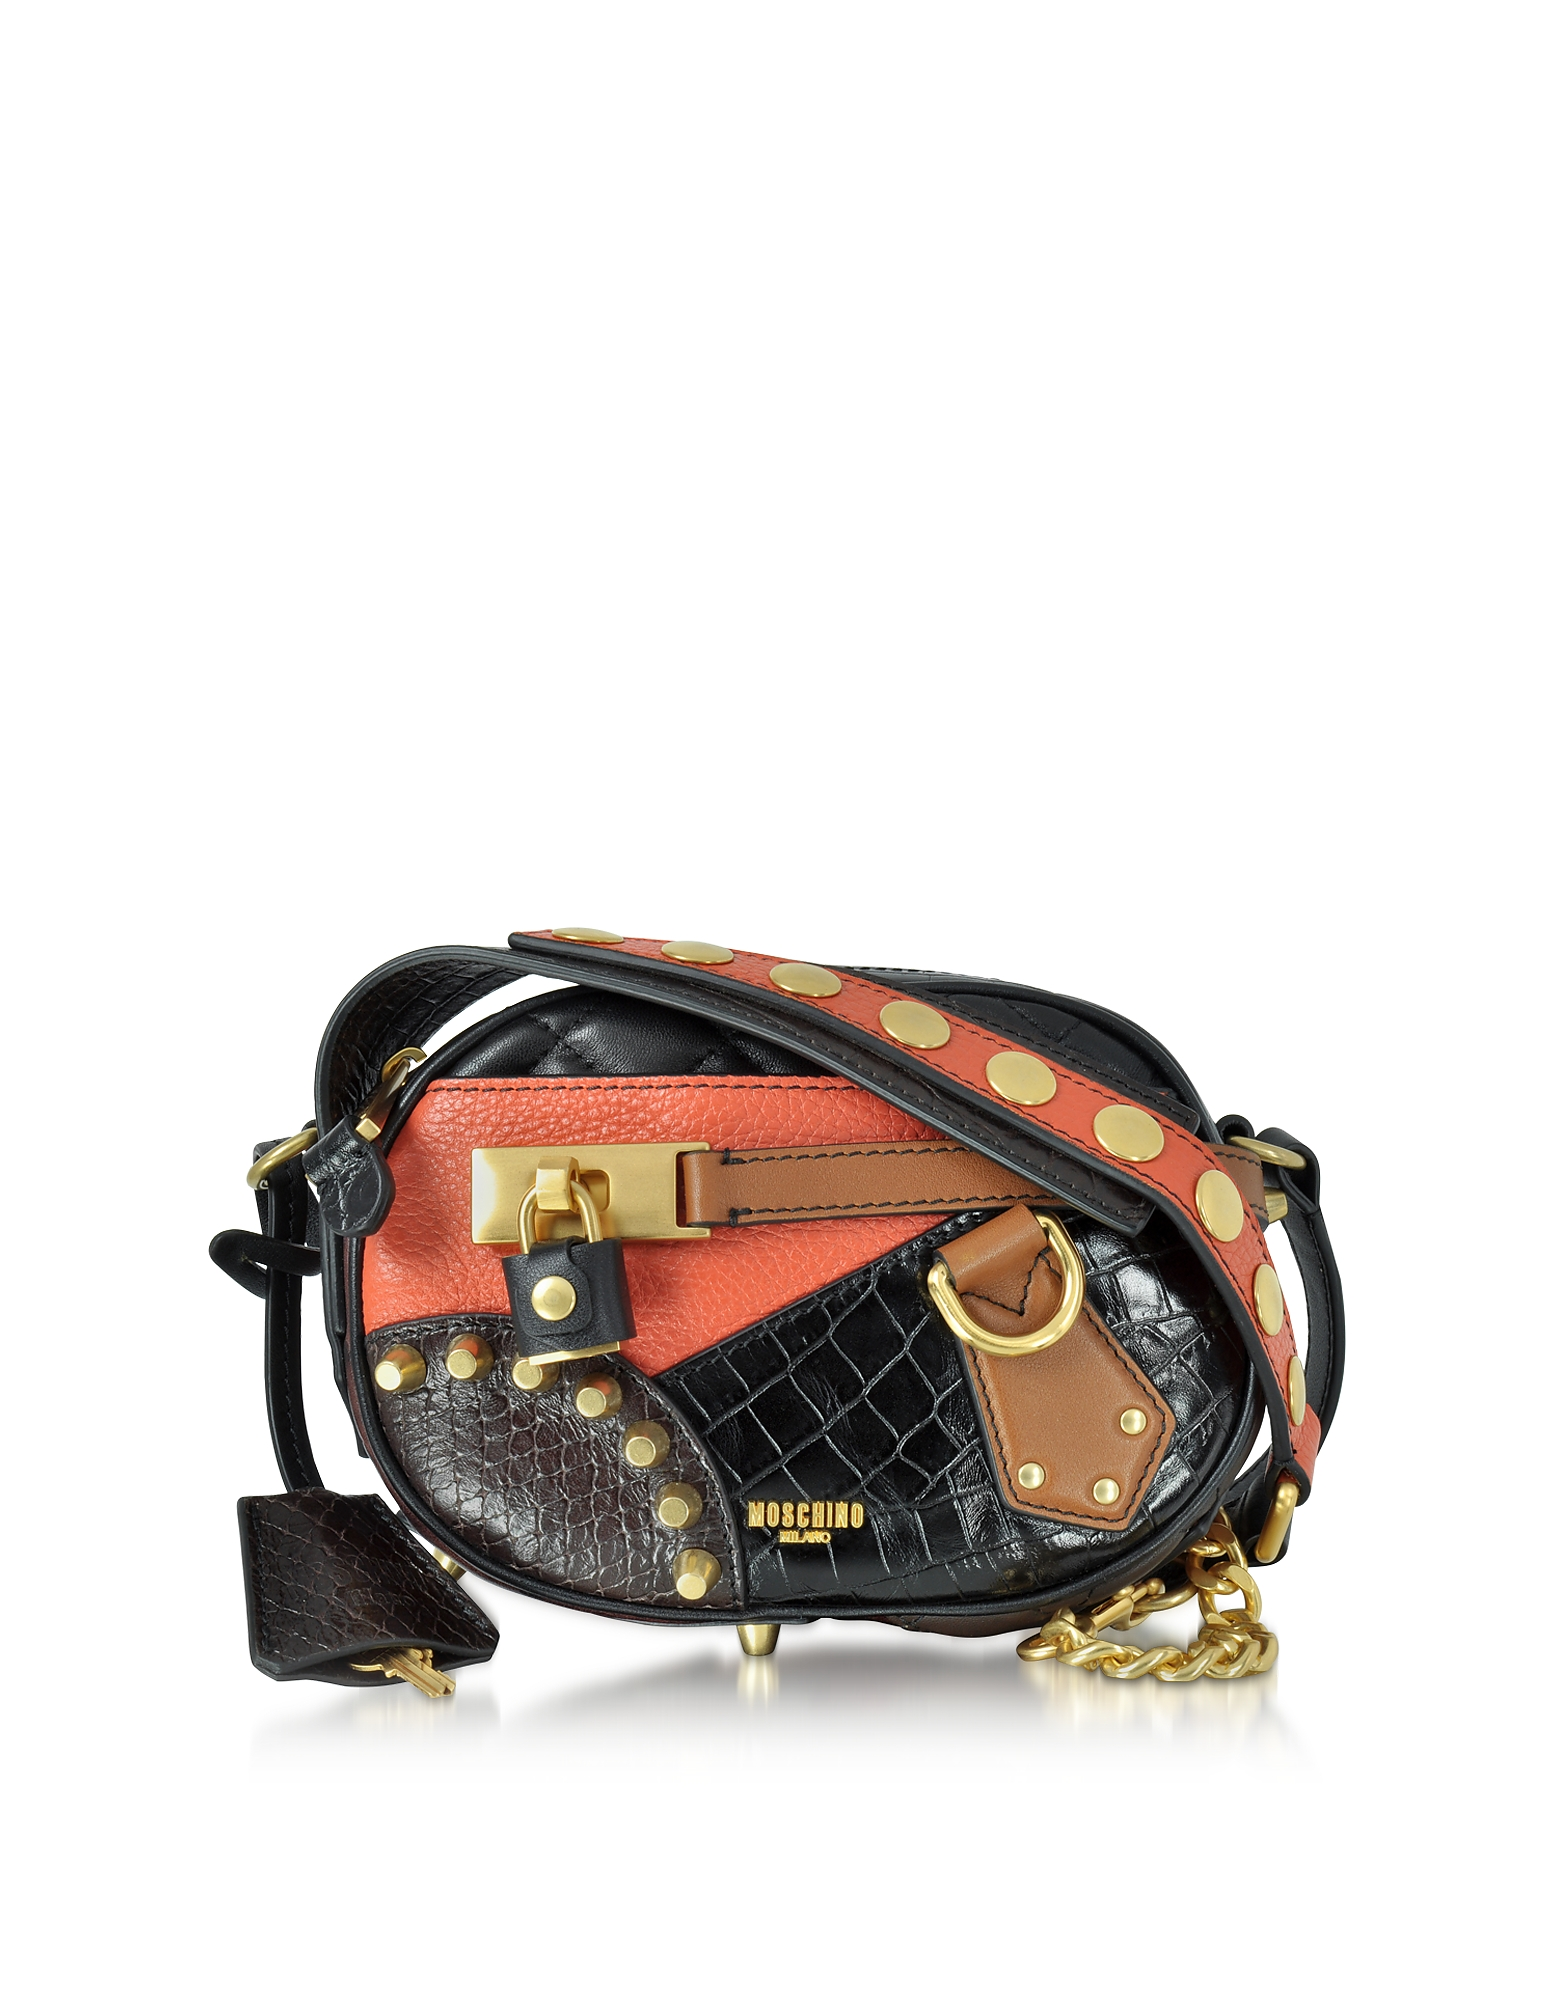 Moschino Handbags, Black/Brown Quilted and Embossed Leather Small Shoulder Bag